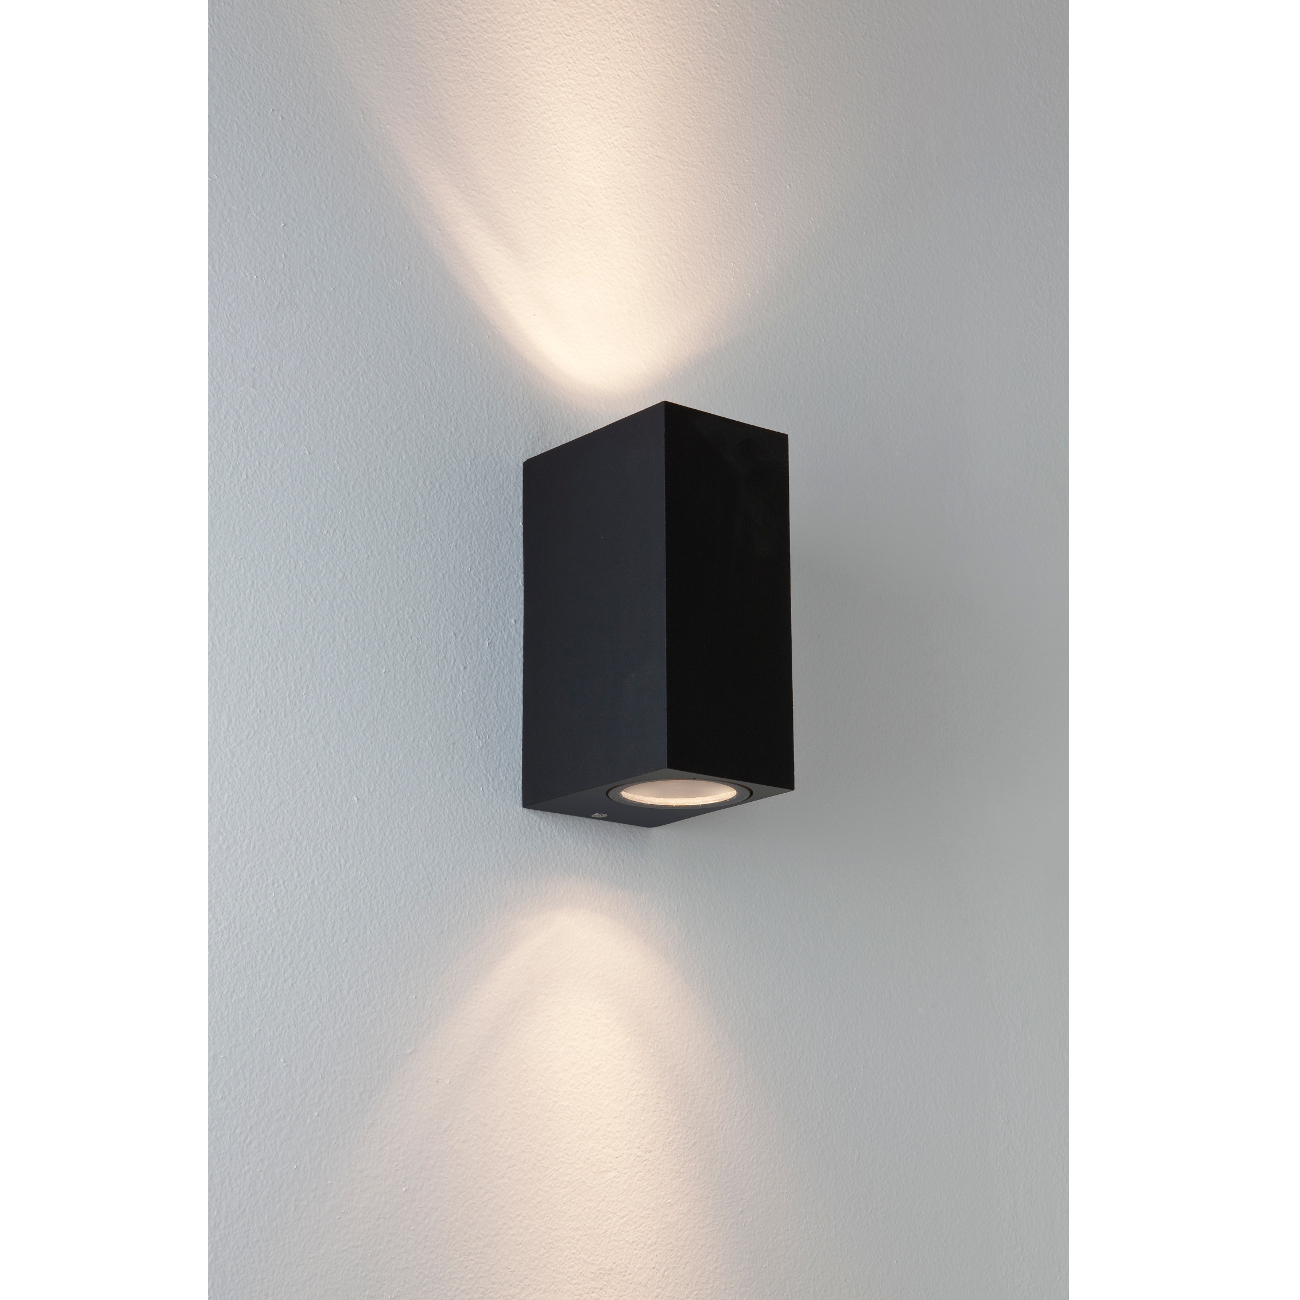 geradlinig designte wandleuchte up downlight f r au en chios astro metall schwarz. Black Bedroom Furniture Sets. Home Design Ideas